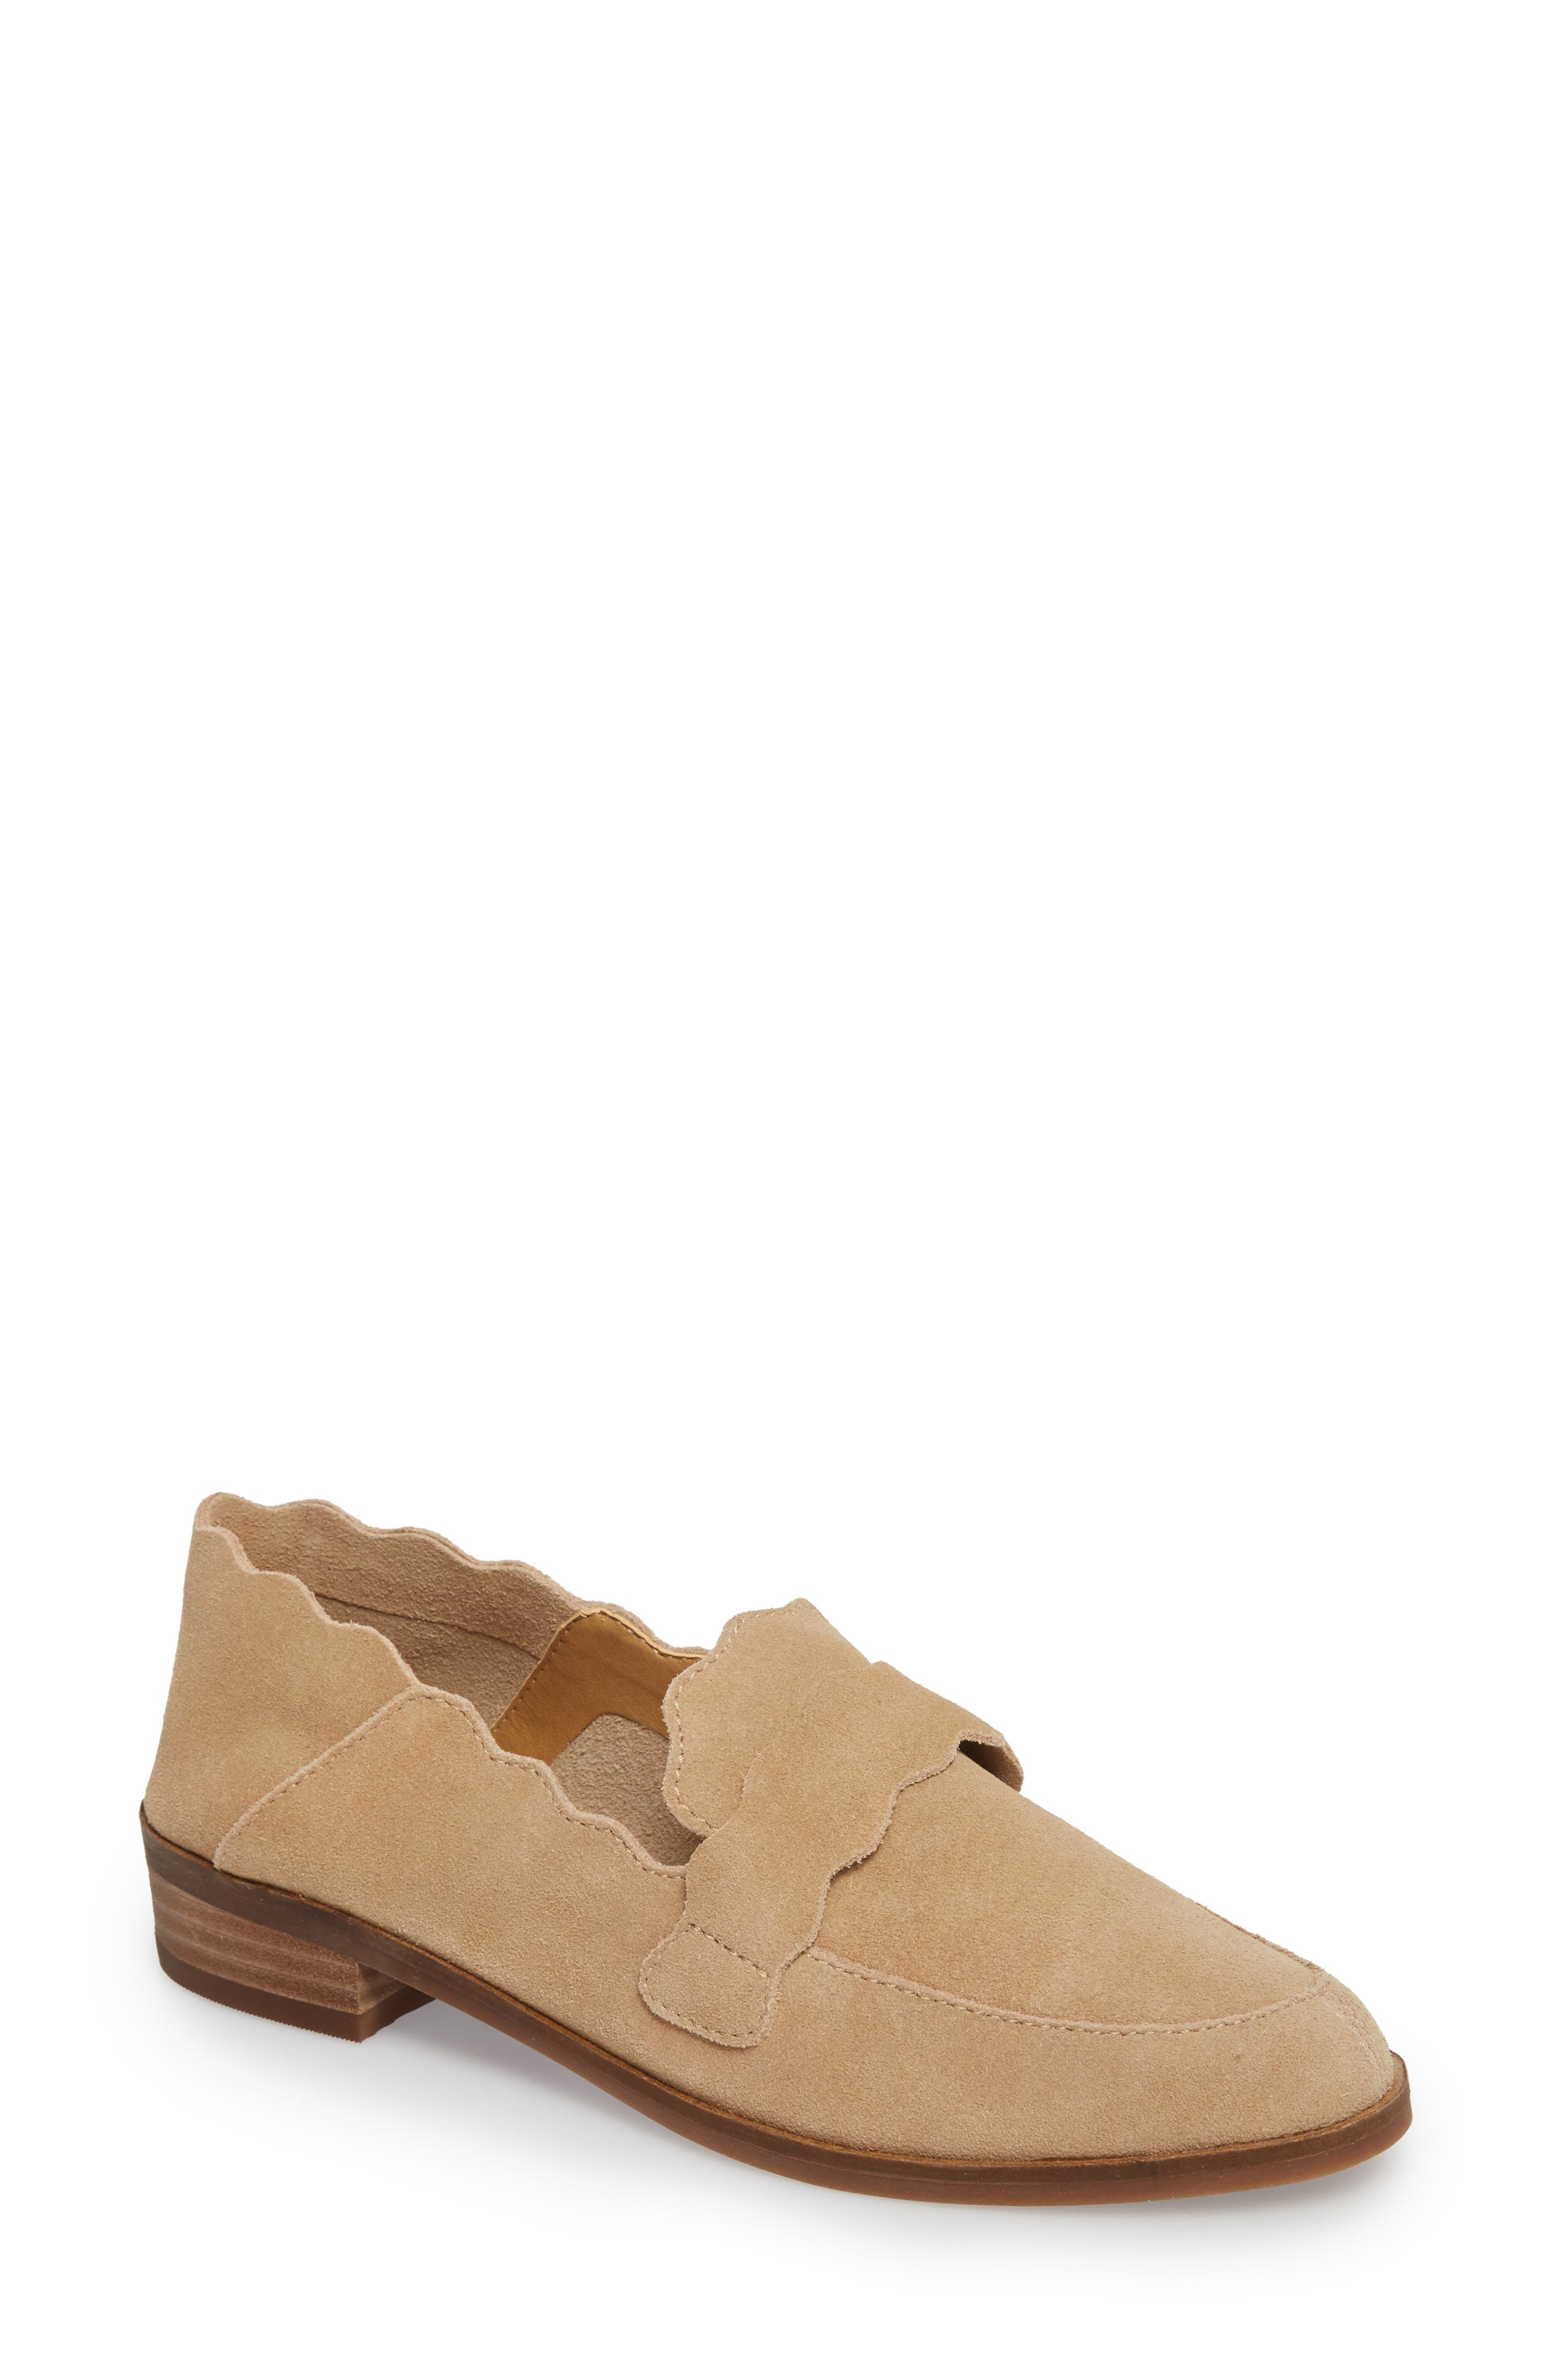 Callister Loafer,                             Main thumbnail 3, color,